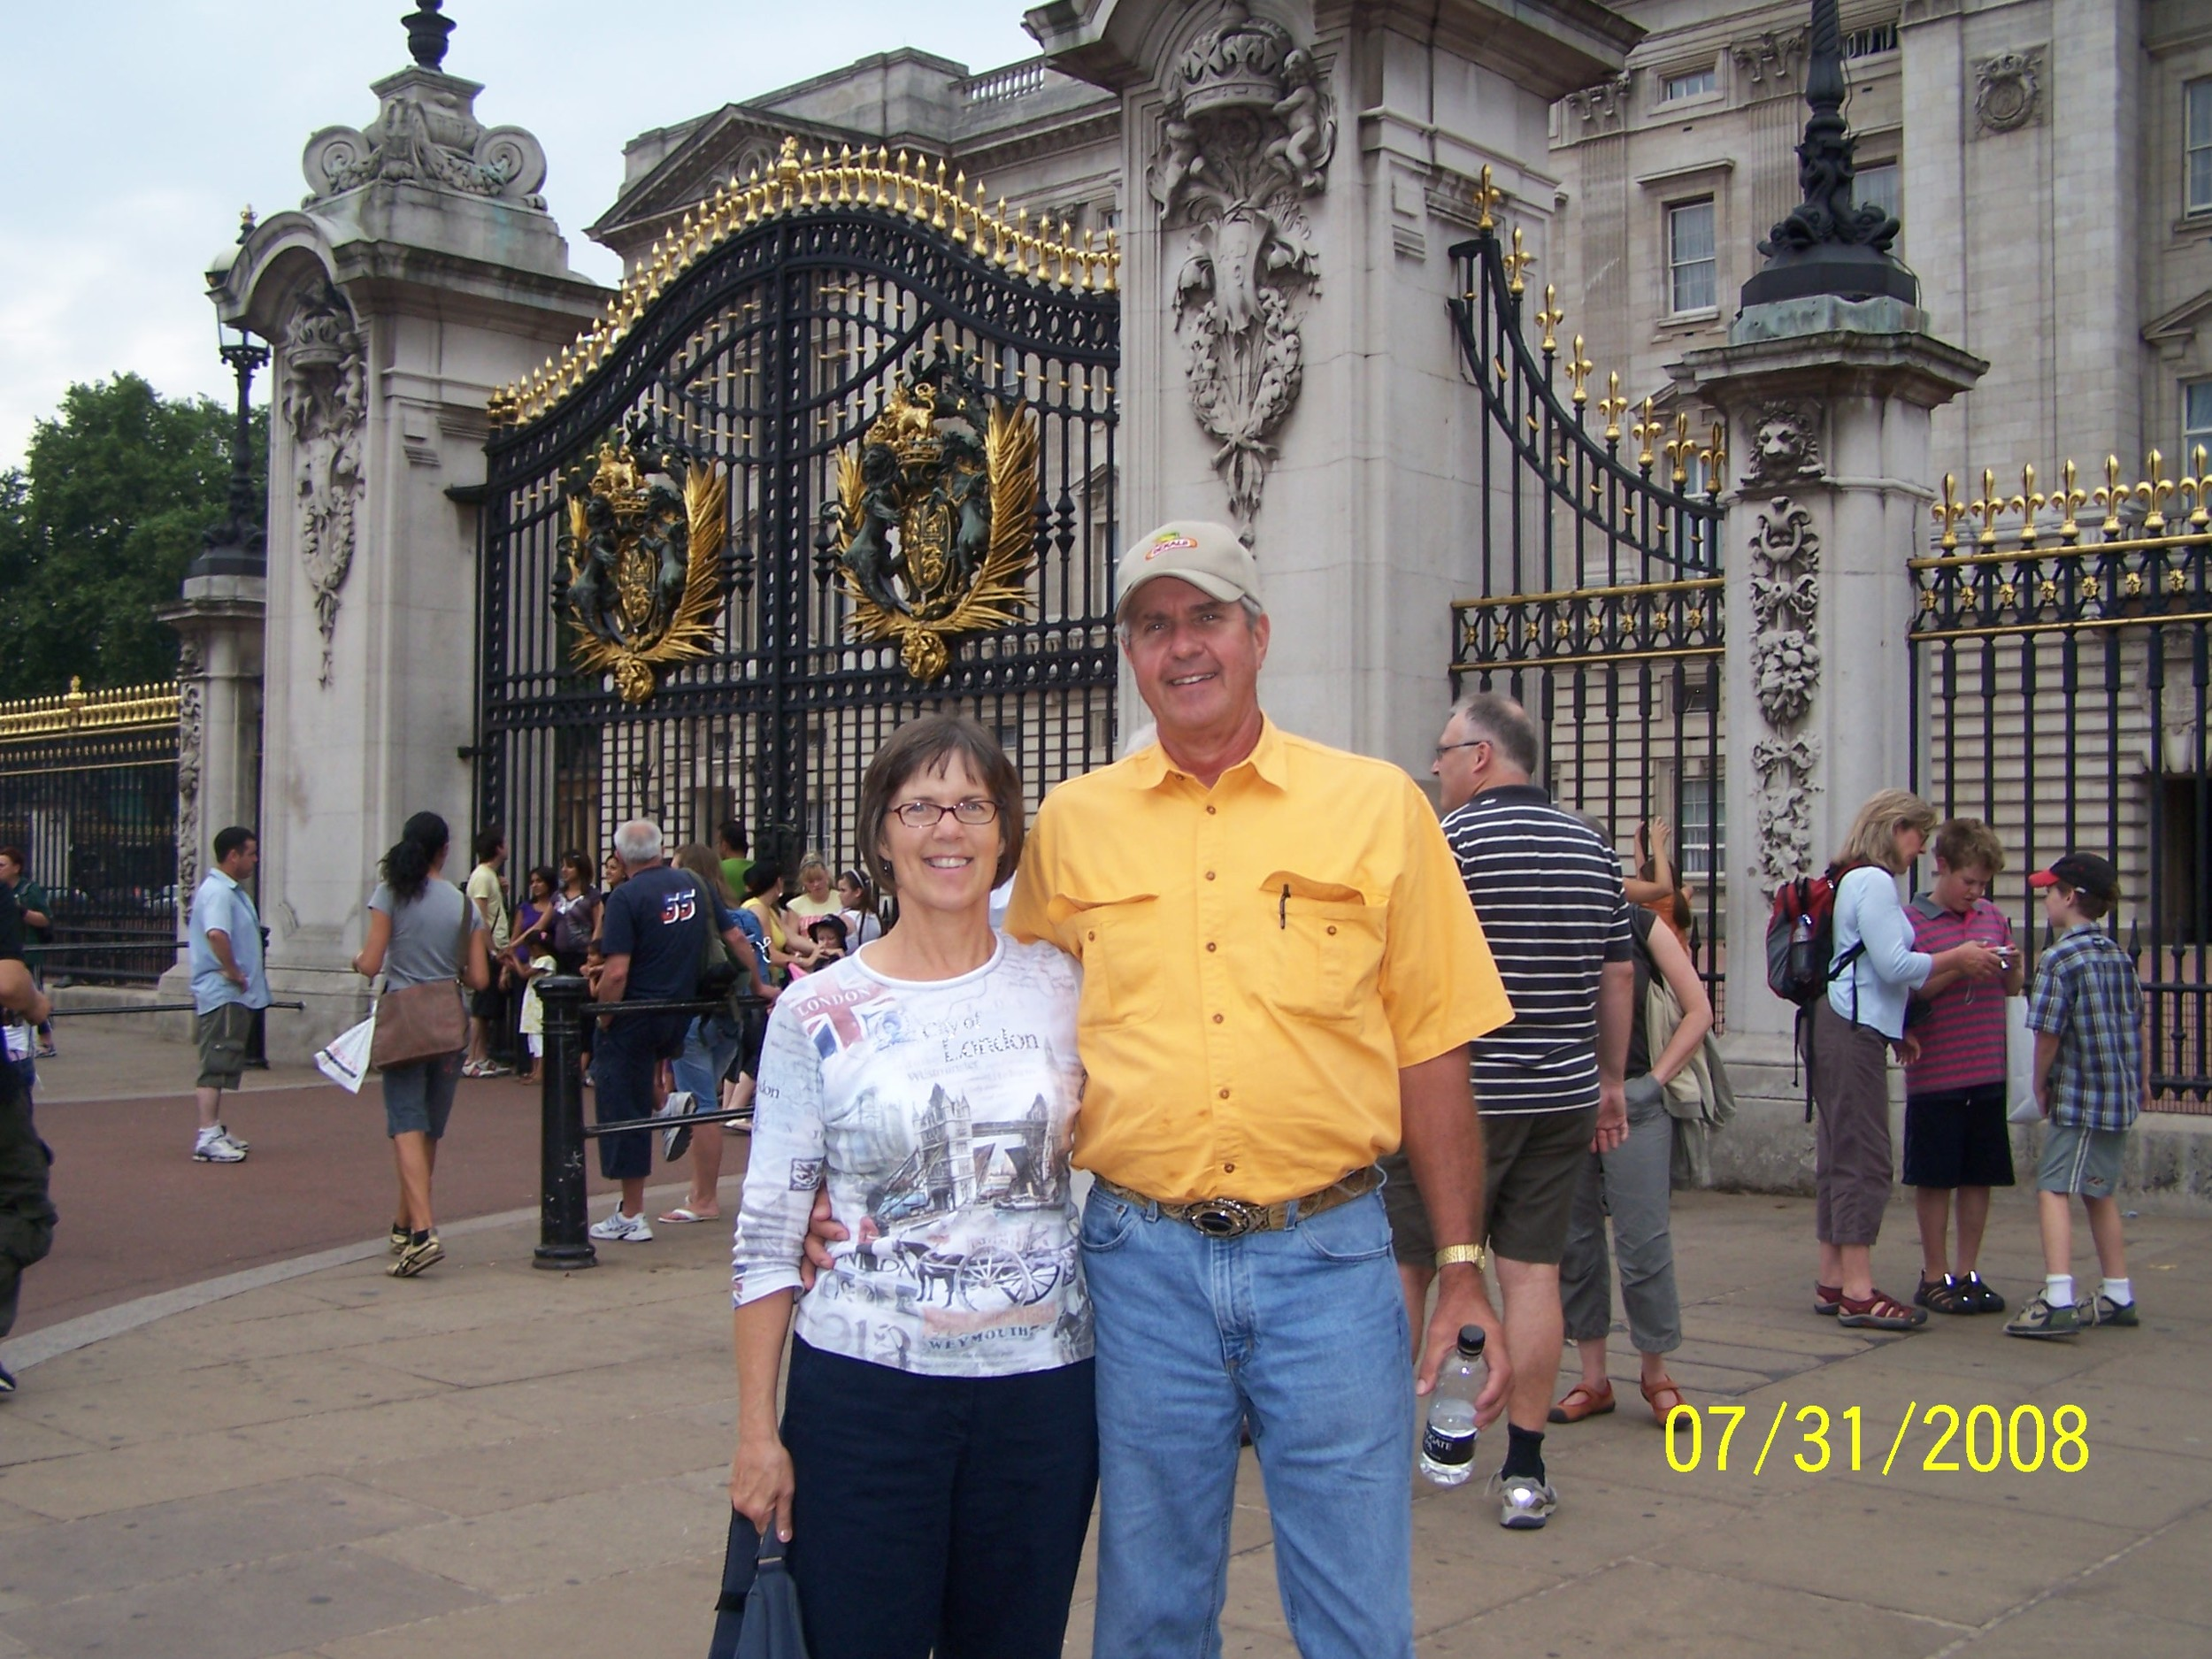 My wonderful parents during their layover in London on their 2008 trip.